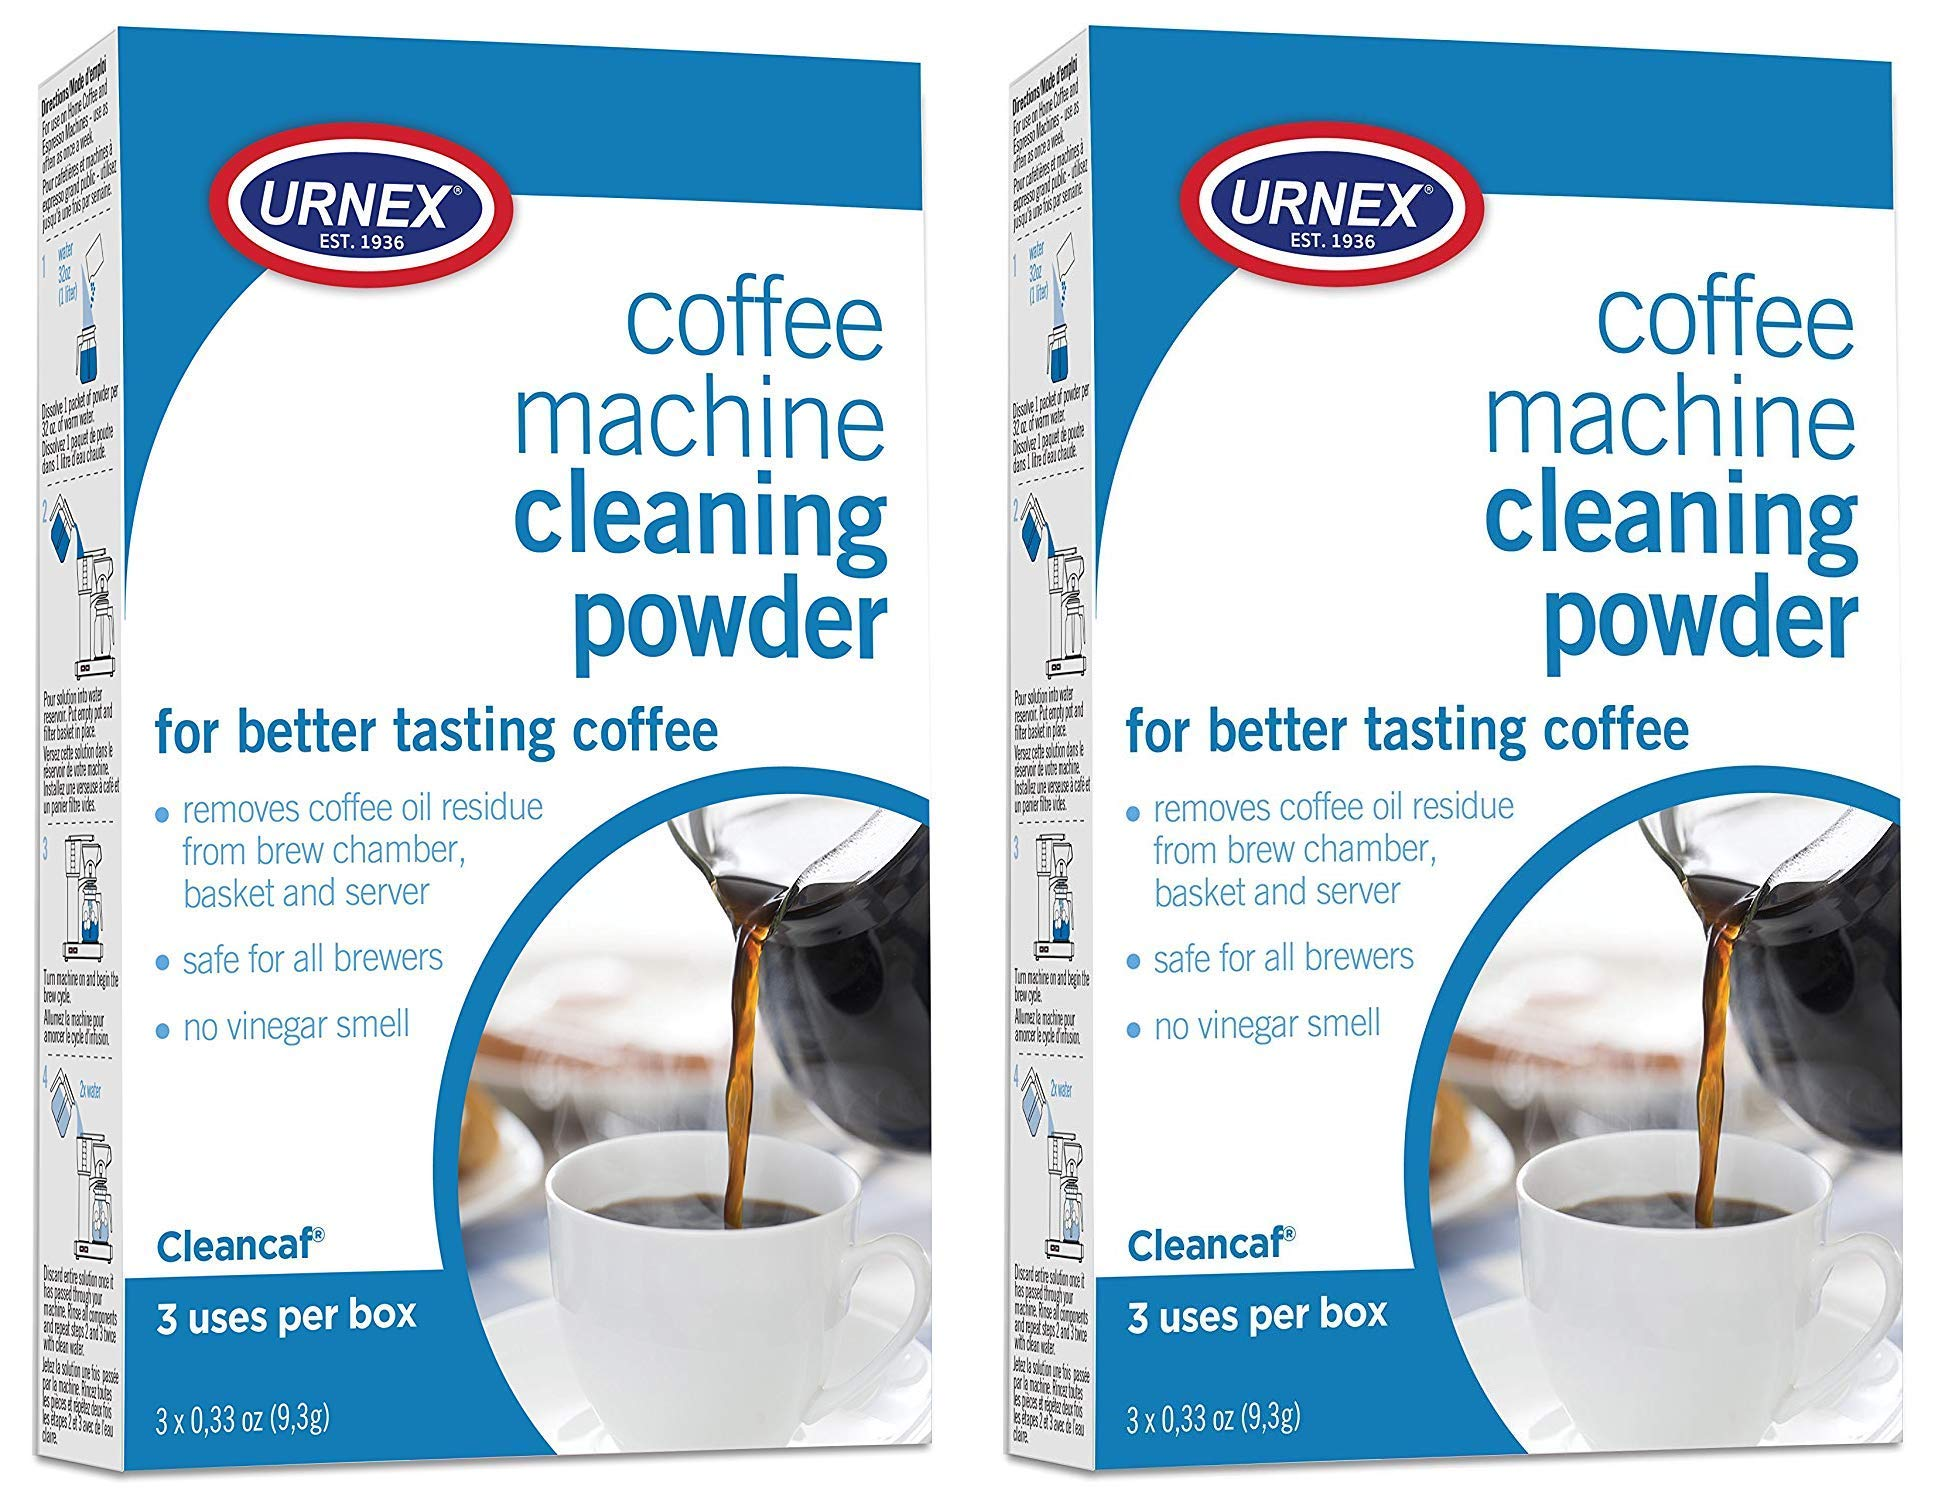 Urnex Coffee and Espresso Machine Cleaning Powder - 2 Pack product image